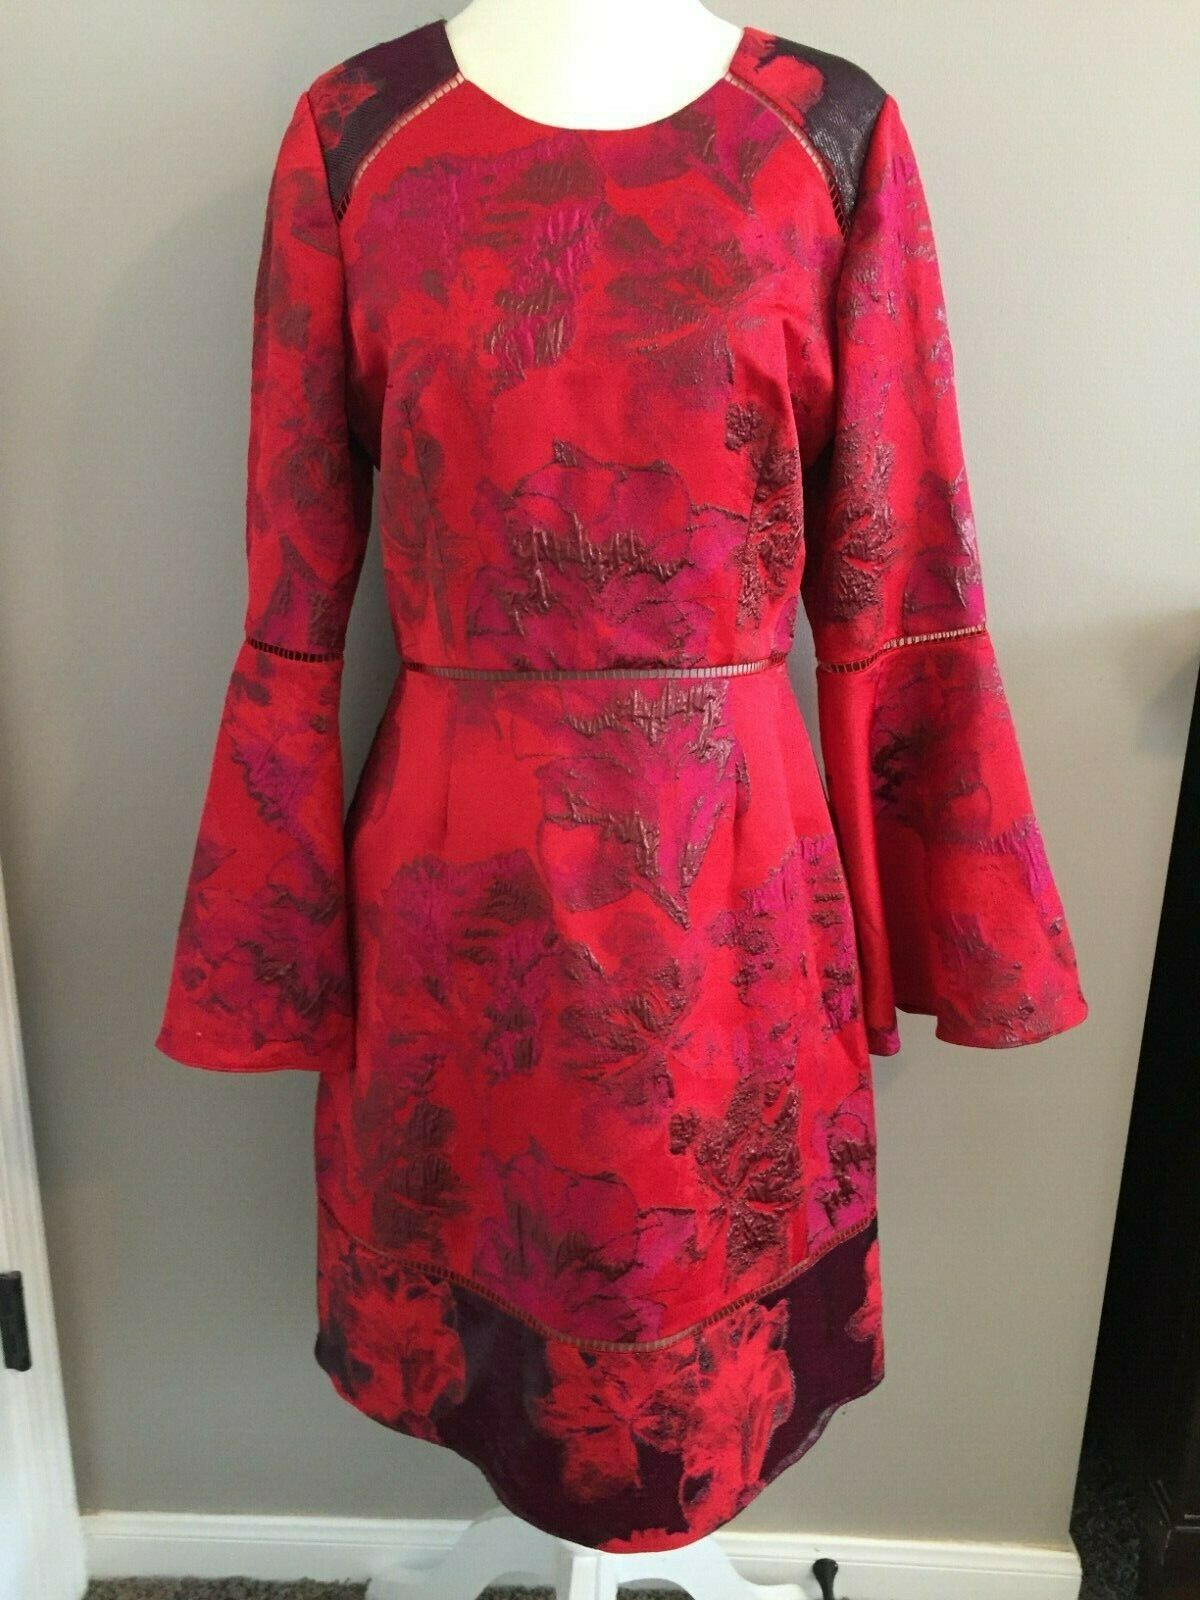 NWT Marchesa Notte Storlek 10 röd Floral Brocade Fit & Flare Dress with Lace Detail